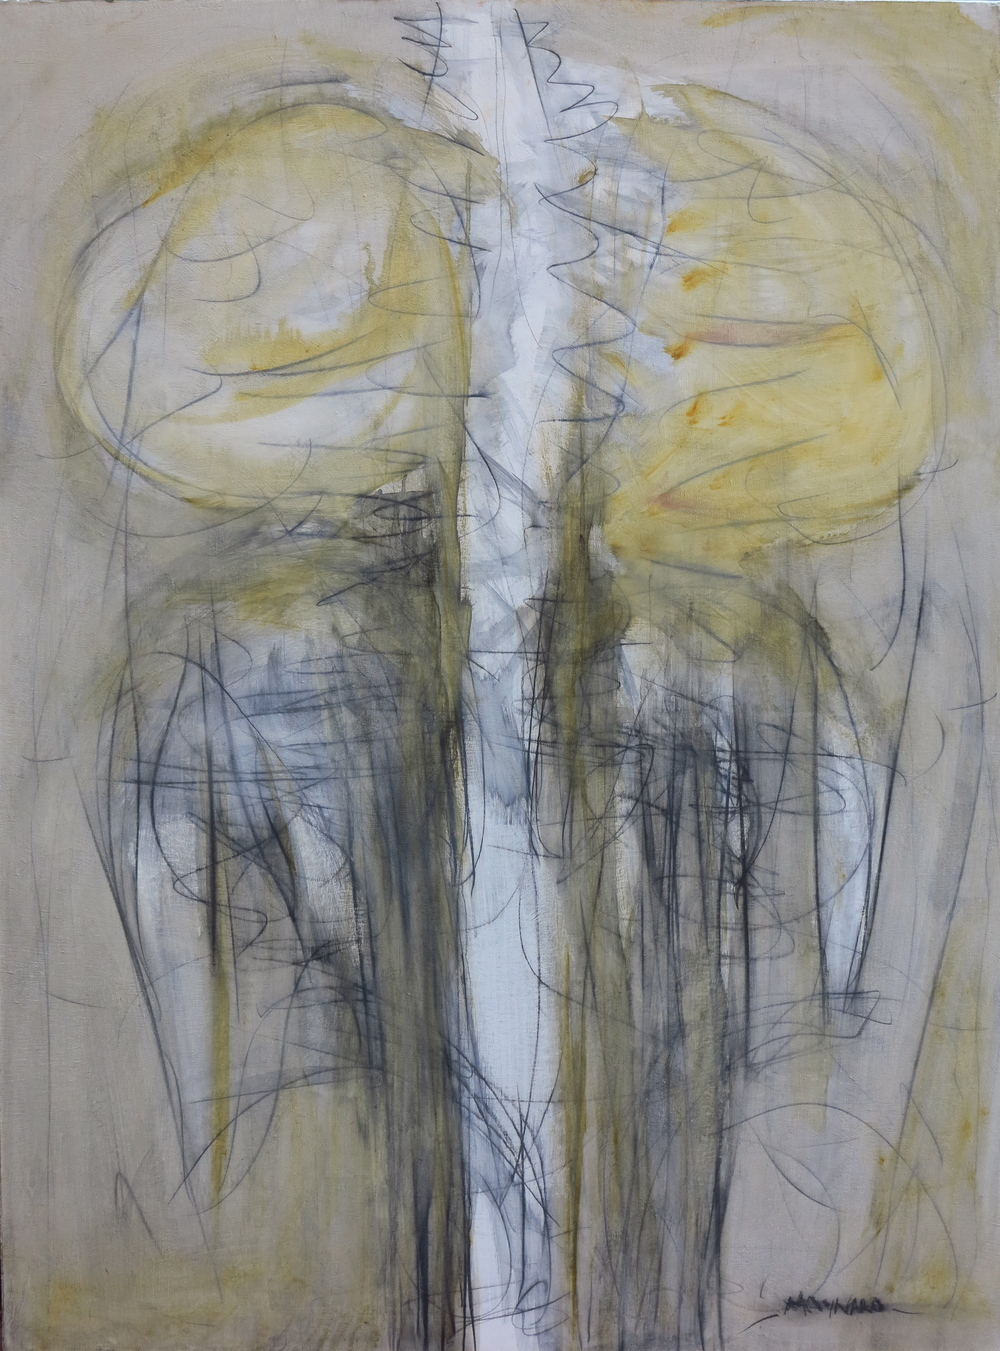 Oil and graphite on canvas - size 100 x 130 cm / 39 x 51 inches